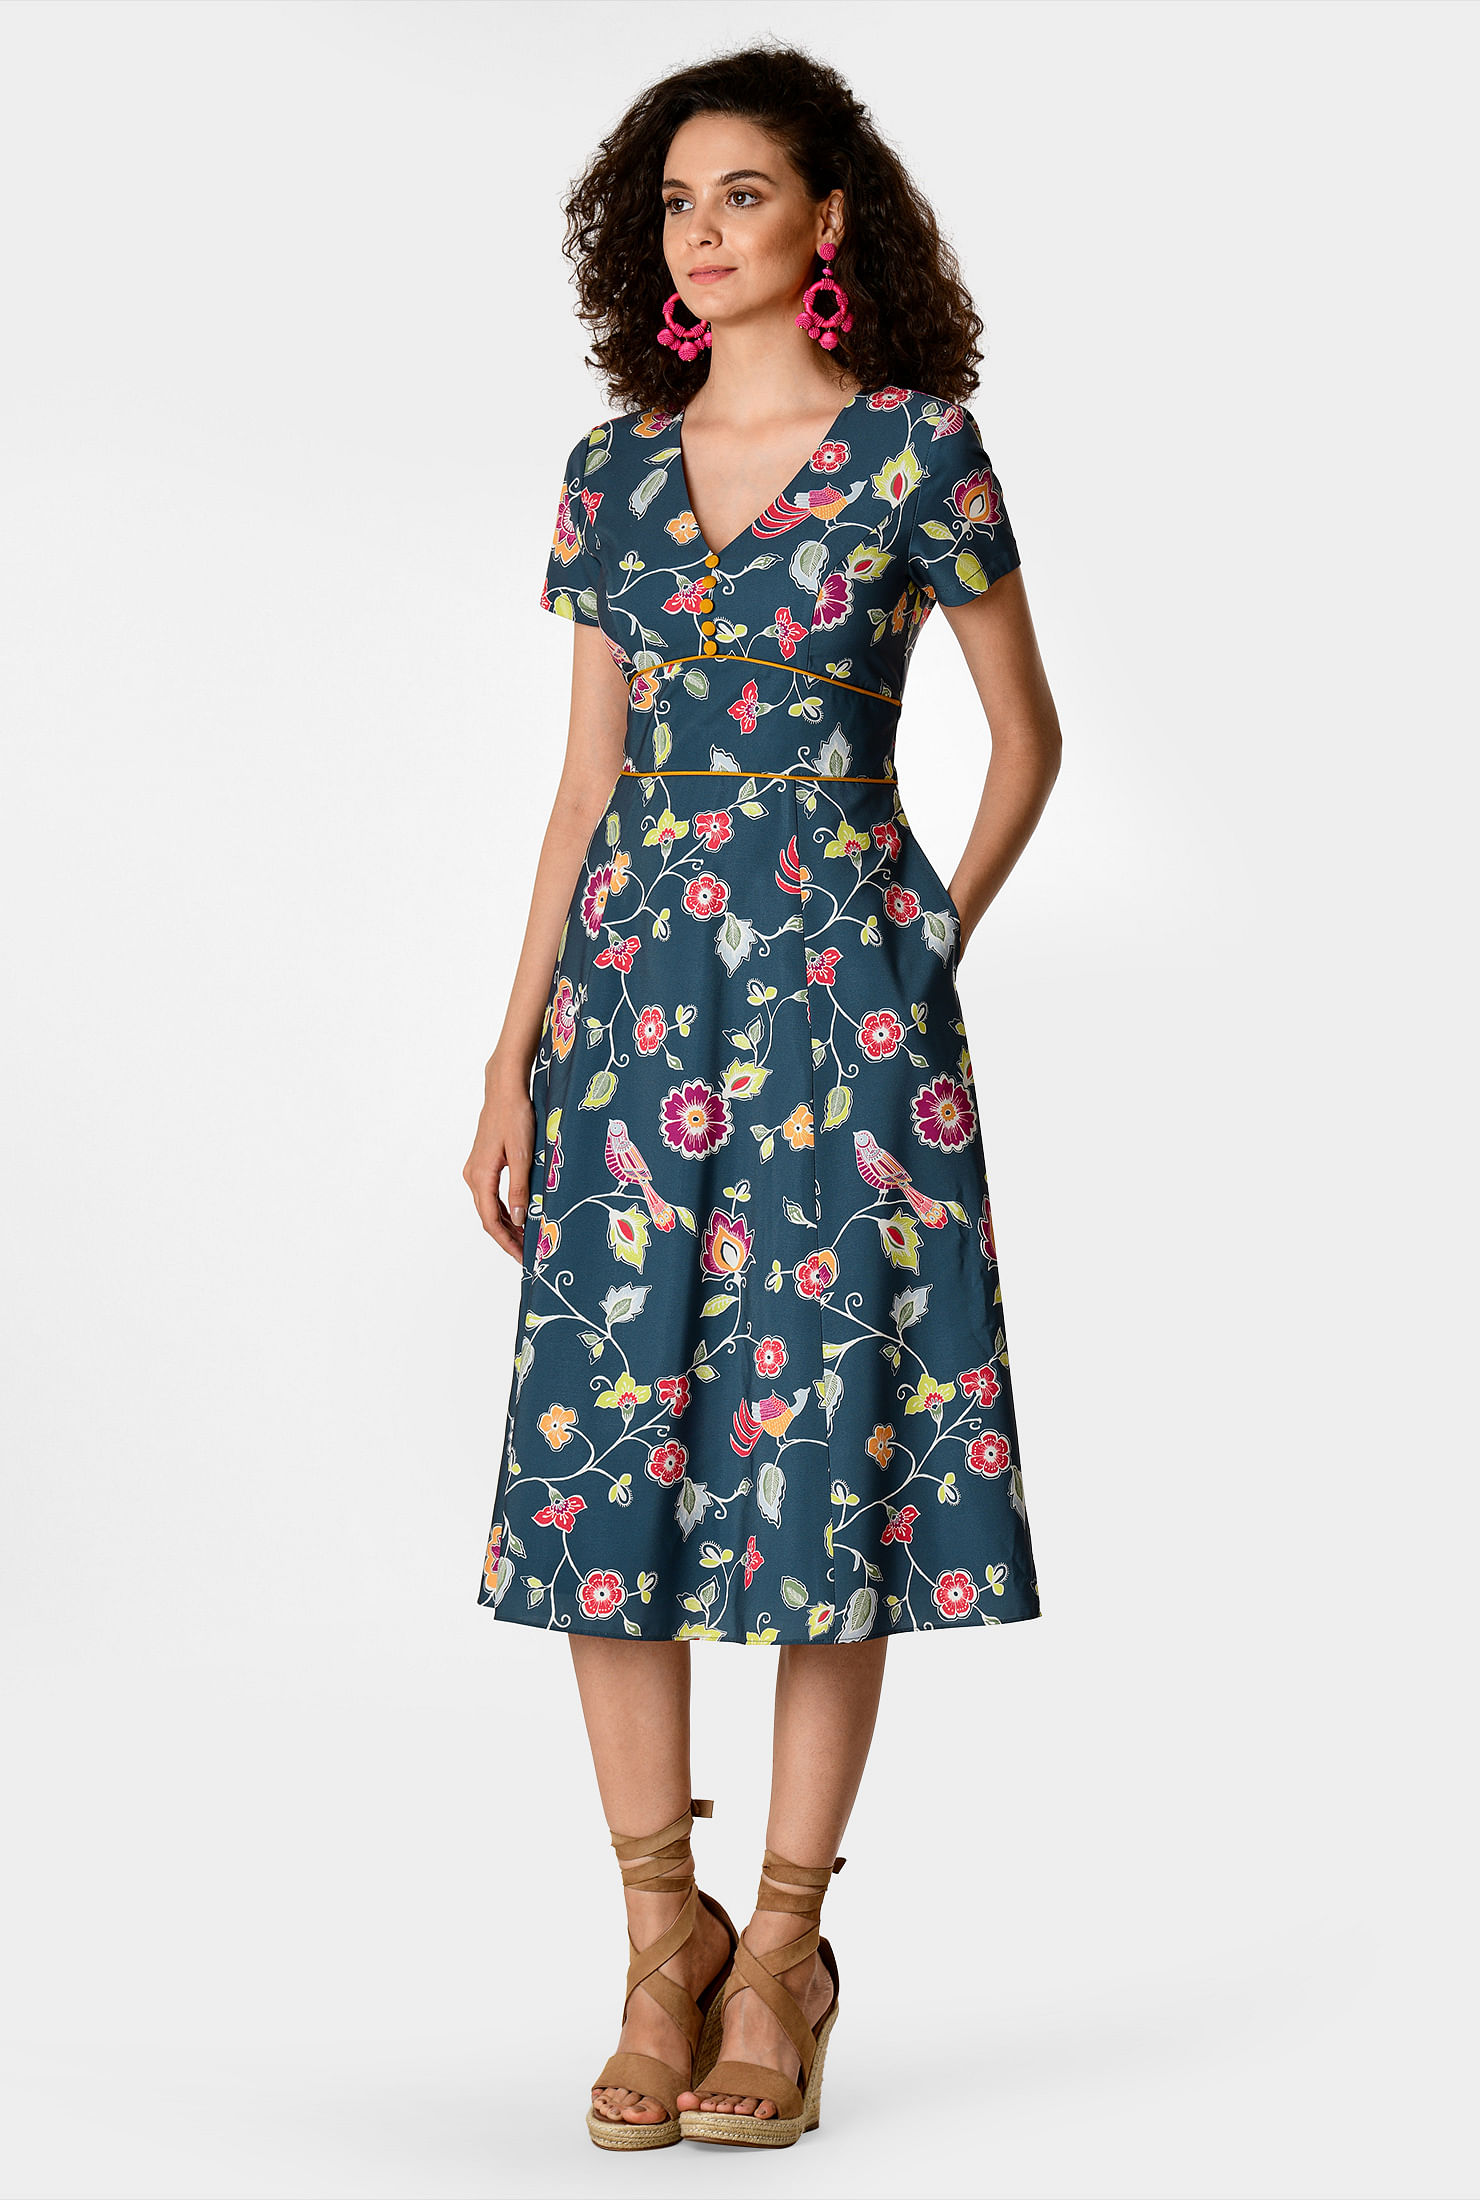 1940s Dresses | 40s Dress, Swing Dress Floral print crepe banded empire dress $54.95 AT vintagedancer.com